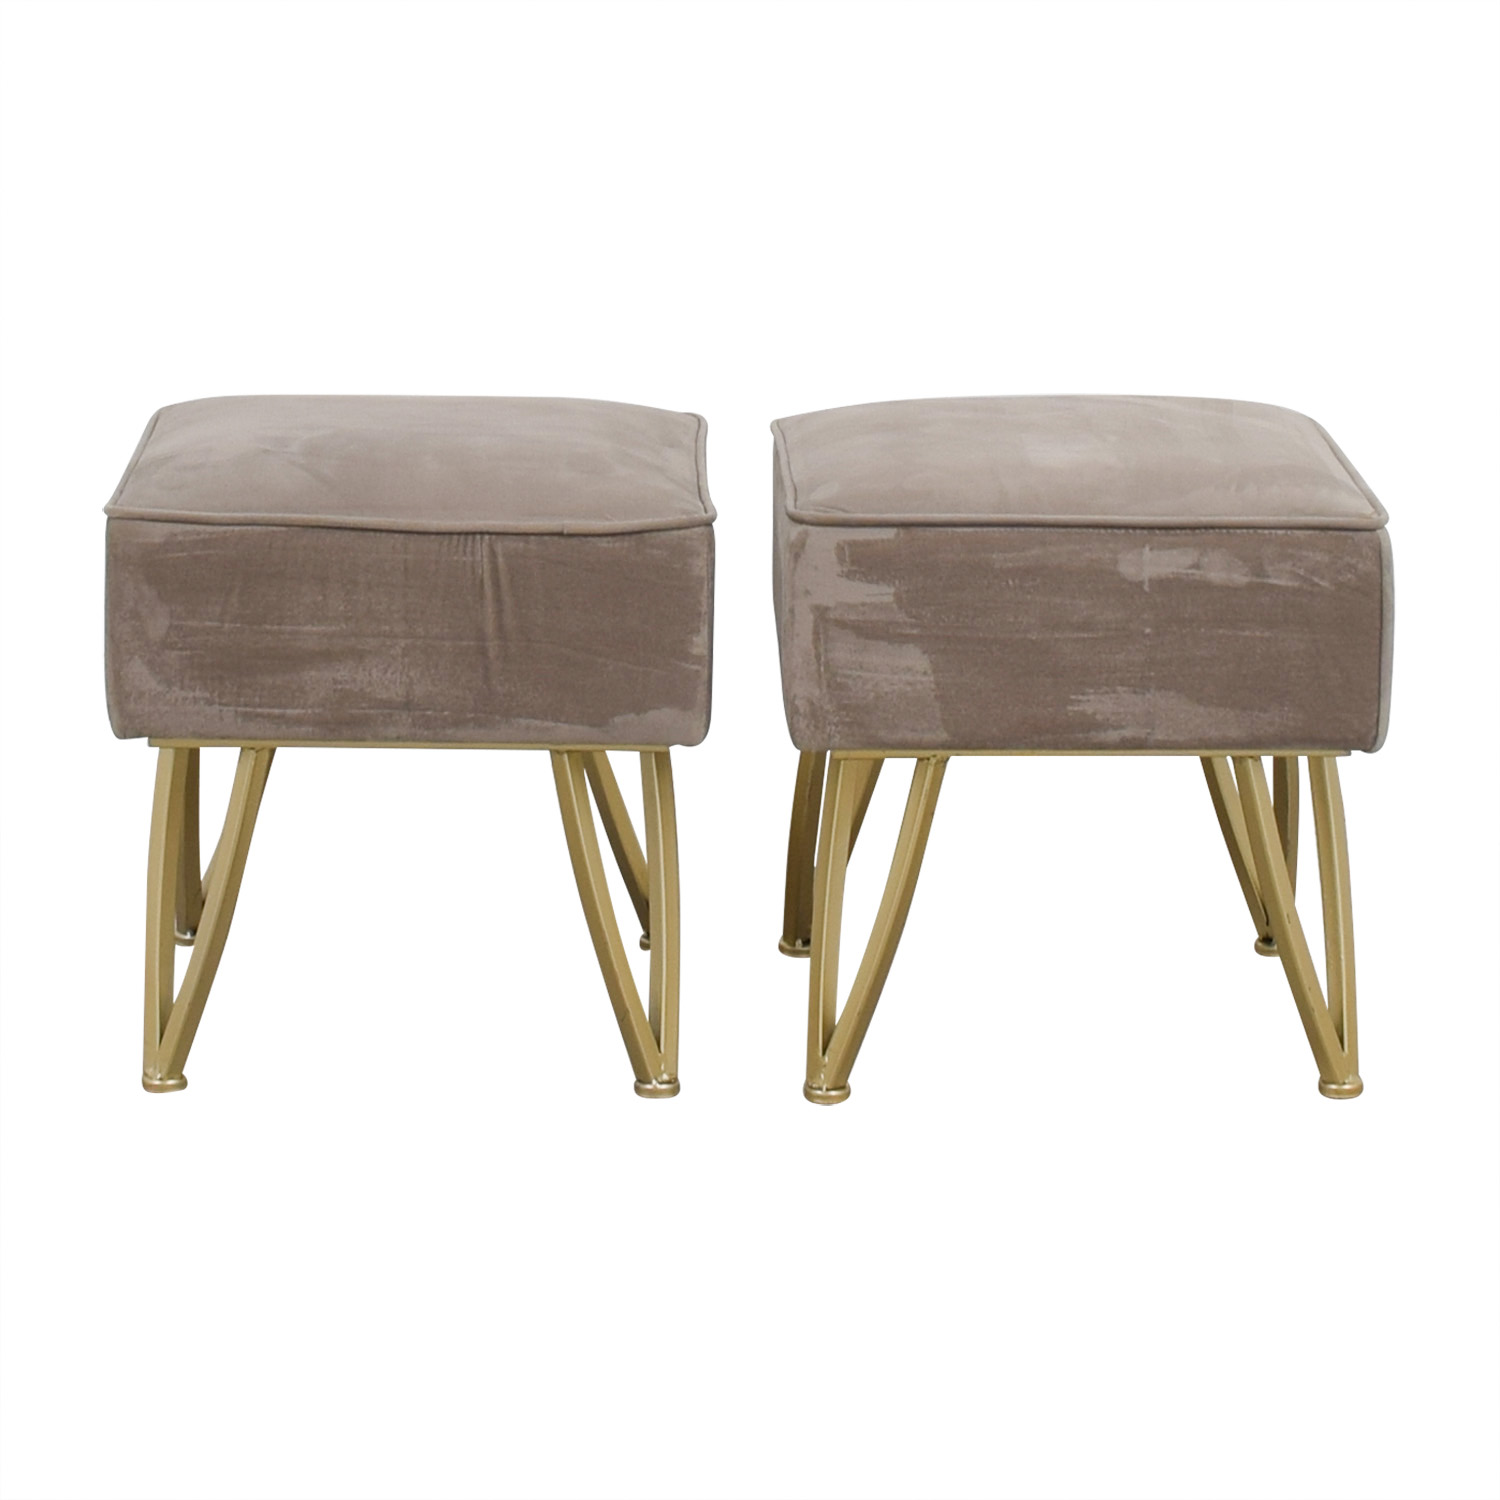 World Market World Market Velvet Gray and Gold Stools or Ottomans